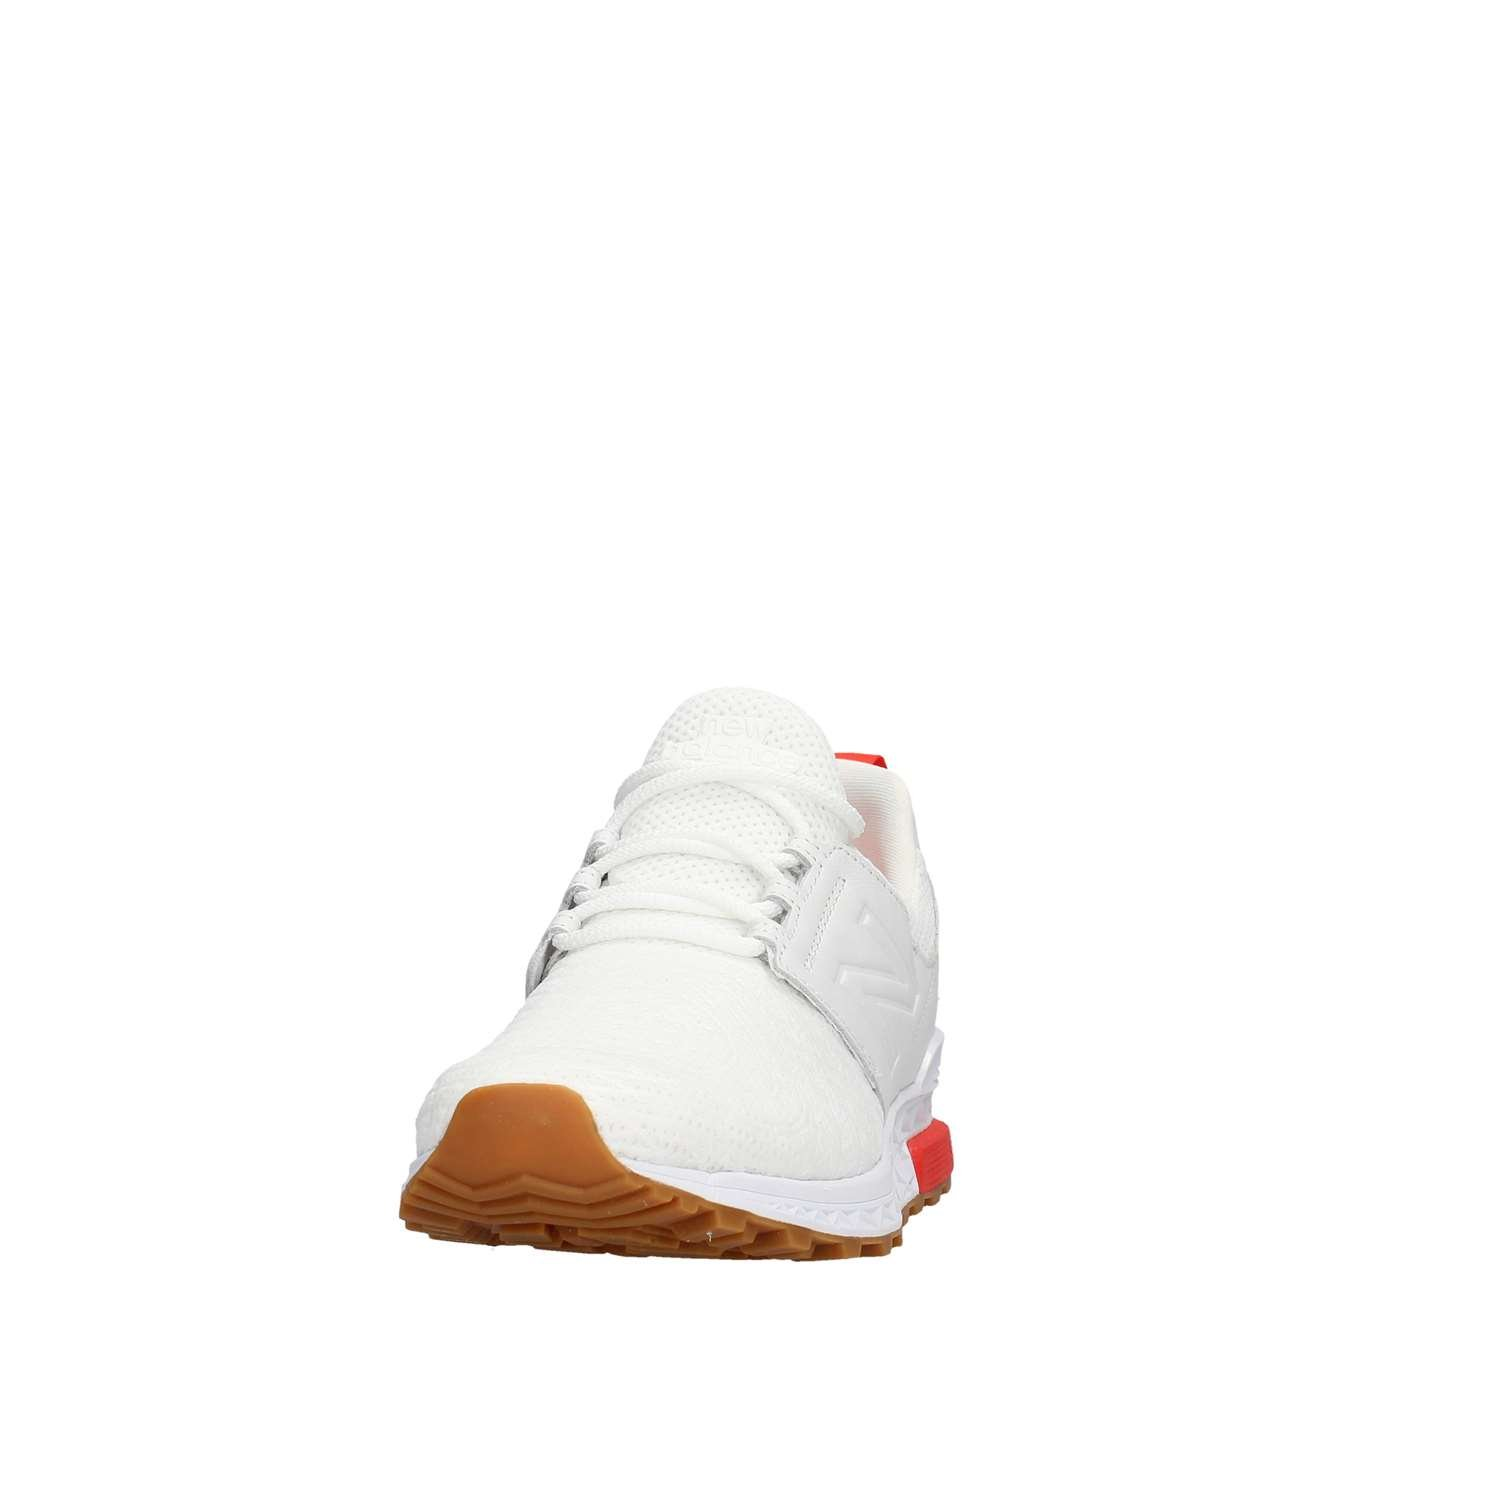 New Balance 4005211755, 11, Größe 11, 4005211755, Producer_Farbe Weiß Flame be9a33